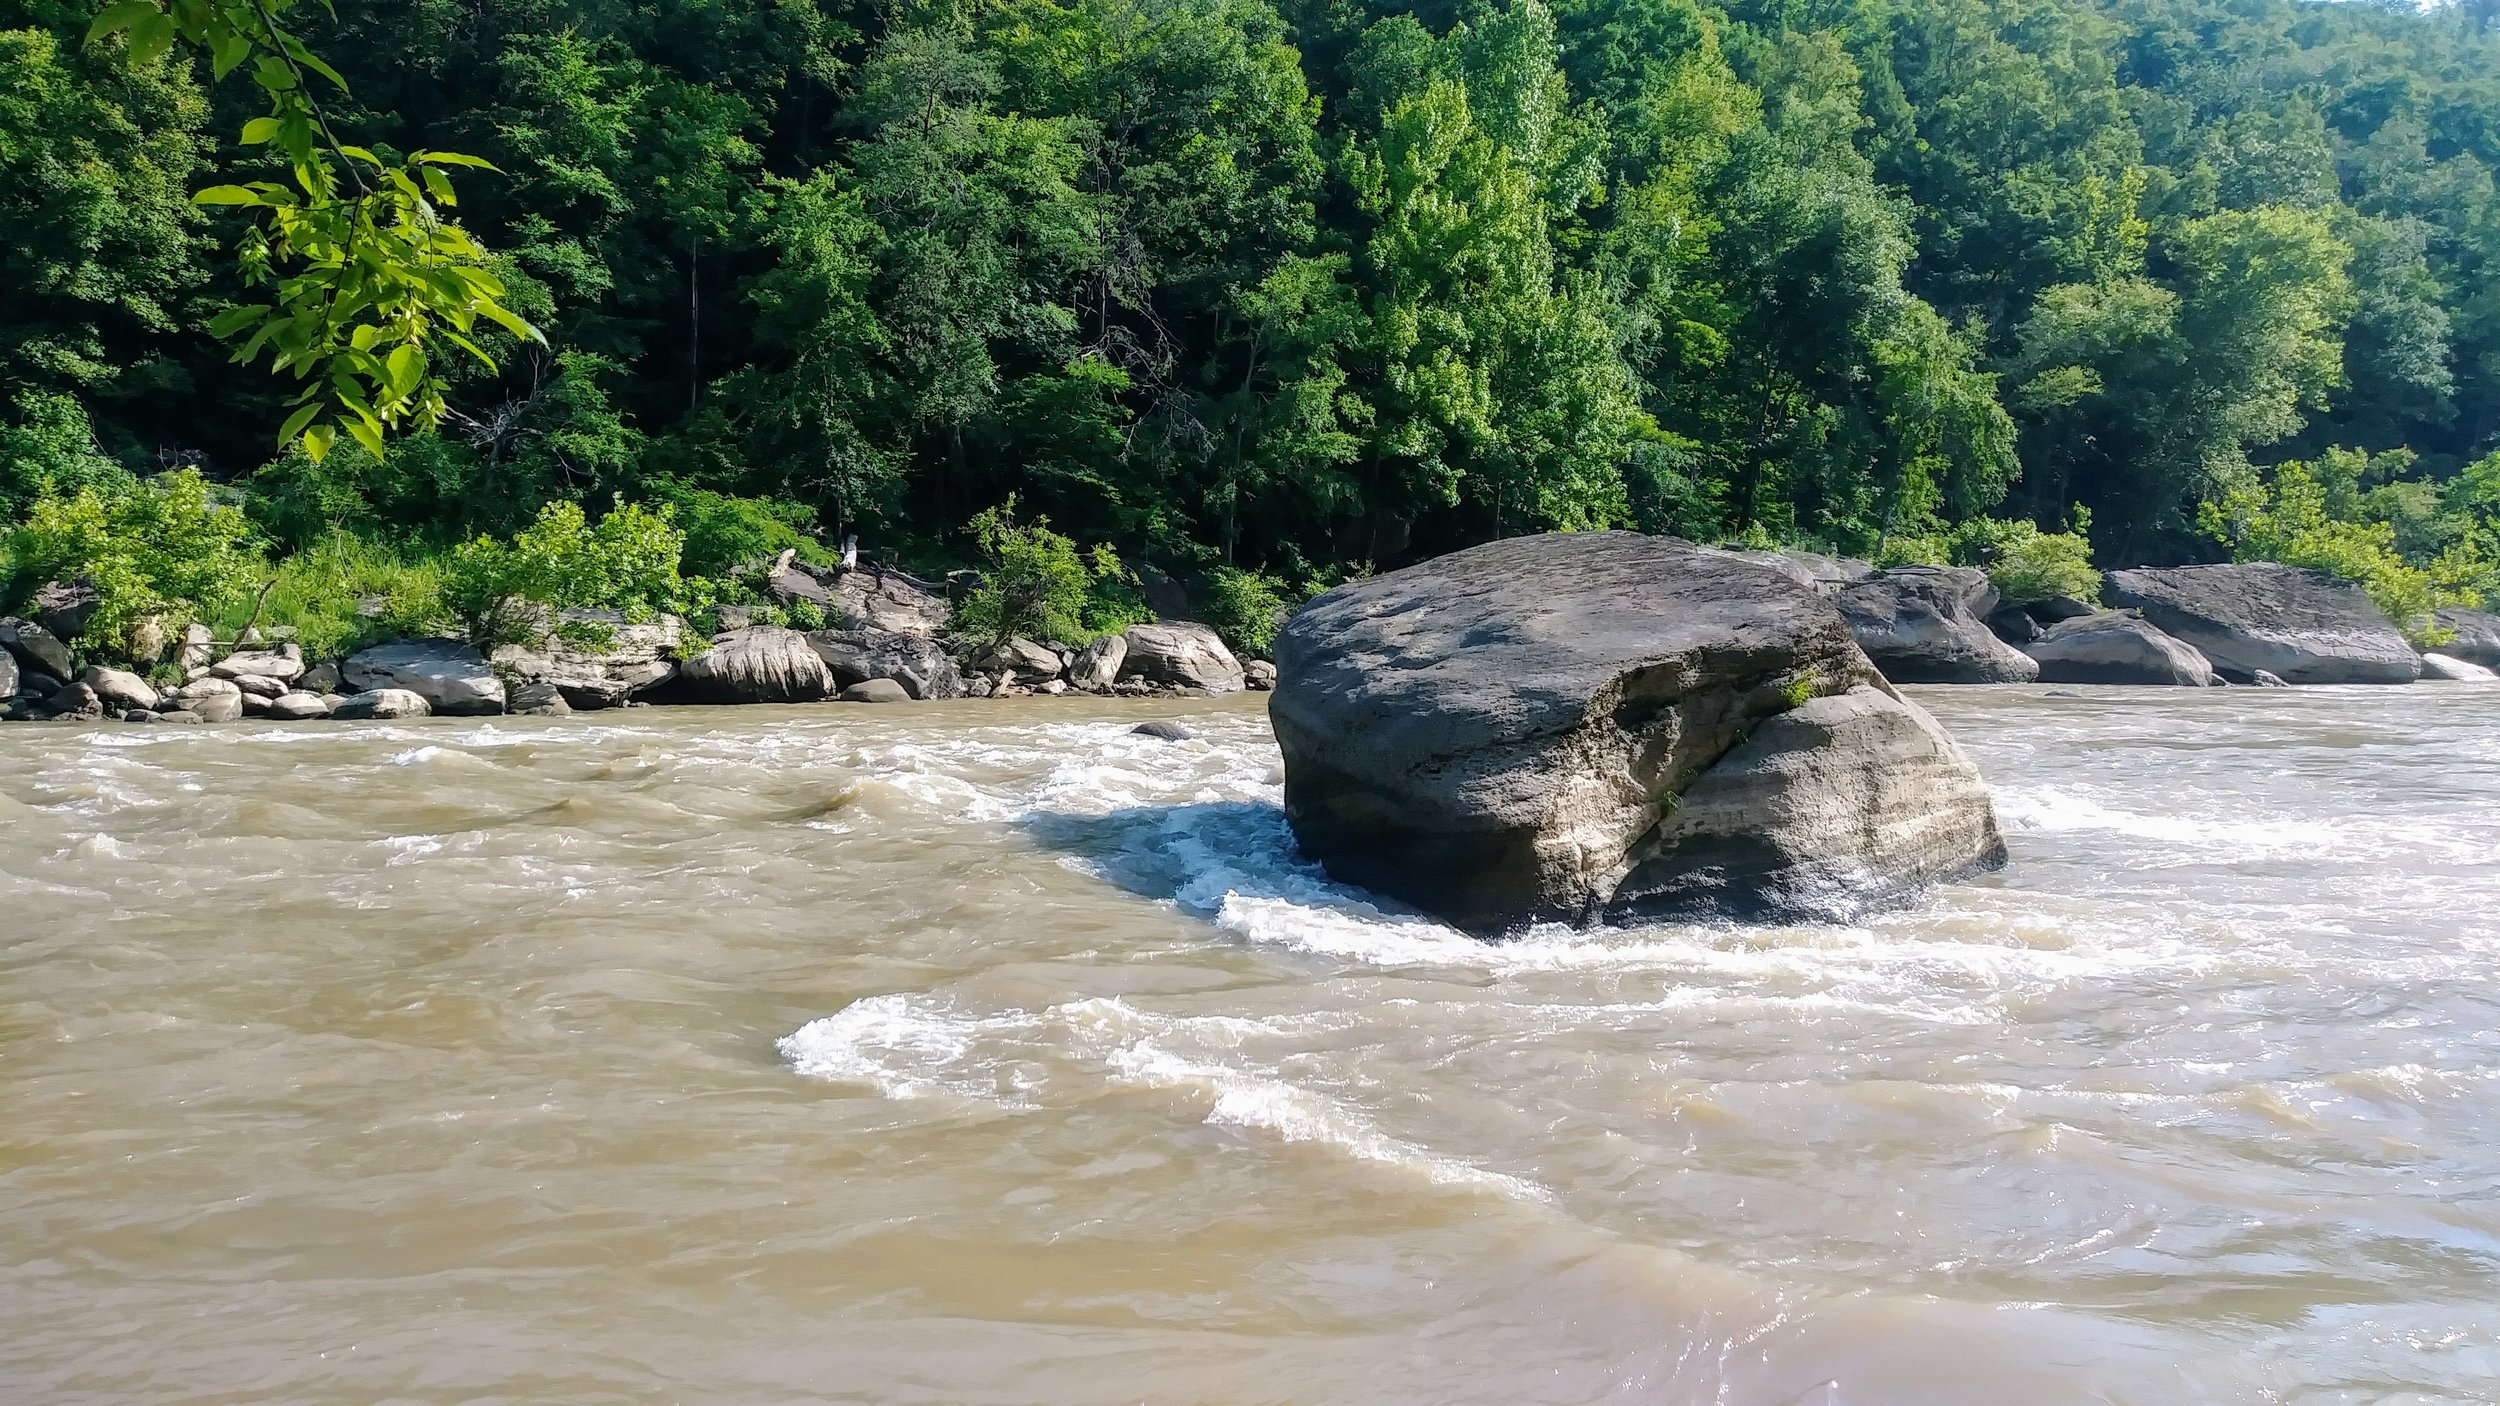 One of many boulders in Cumberland River along the Moonbow Trail/Sheltowee Trace